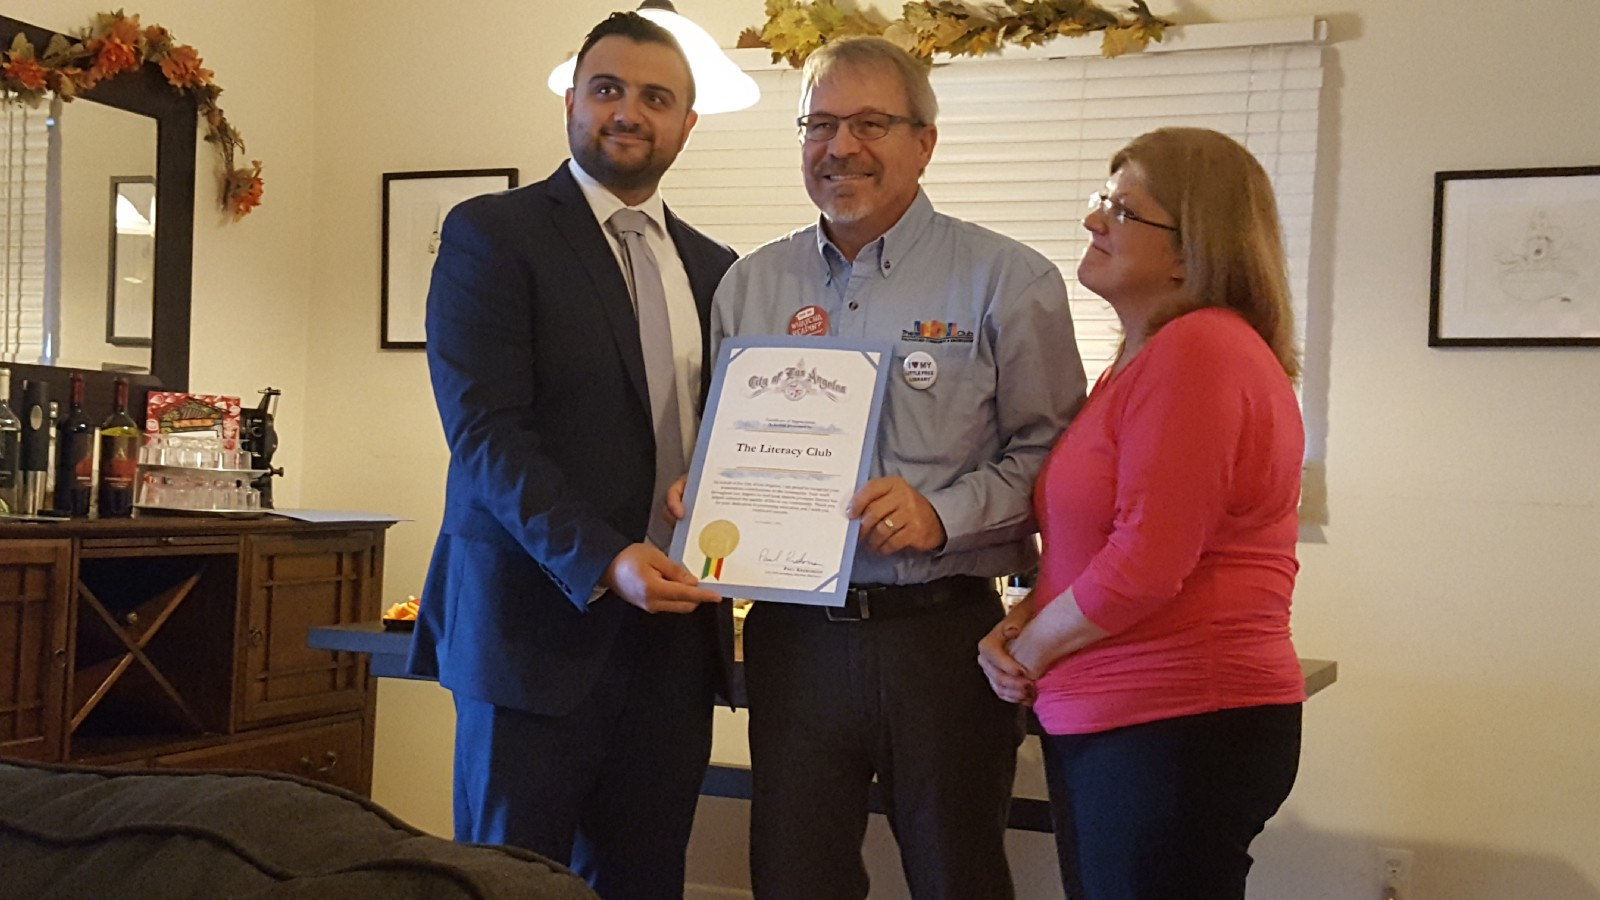 Sahag Yedalian representing Paul Krekorian's office presents a certificate of appreciation from the City of Los Angeles to Jean and Doug Chadwick for their work on The Literacy Club's behalf.